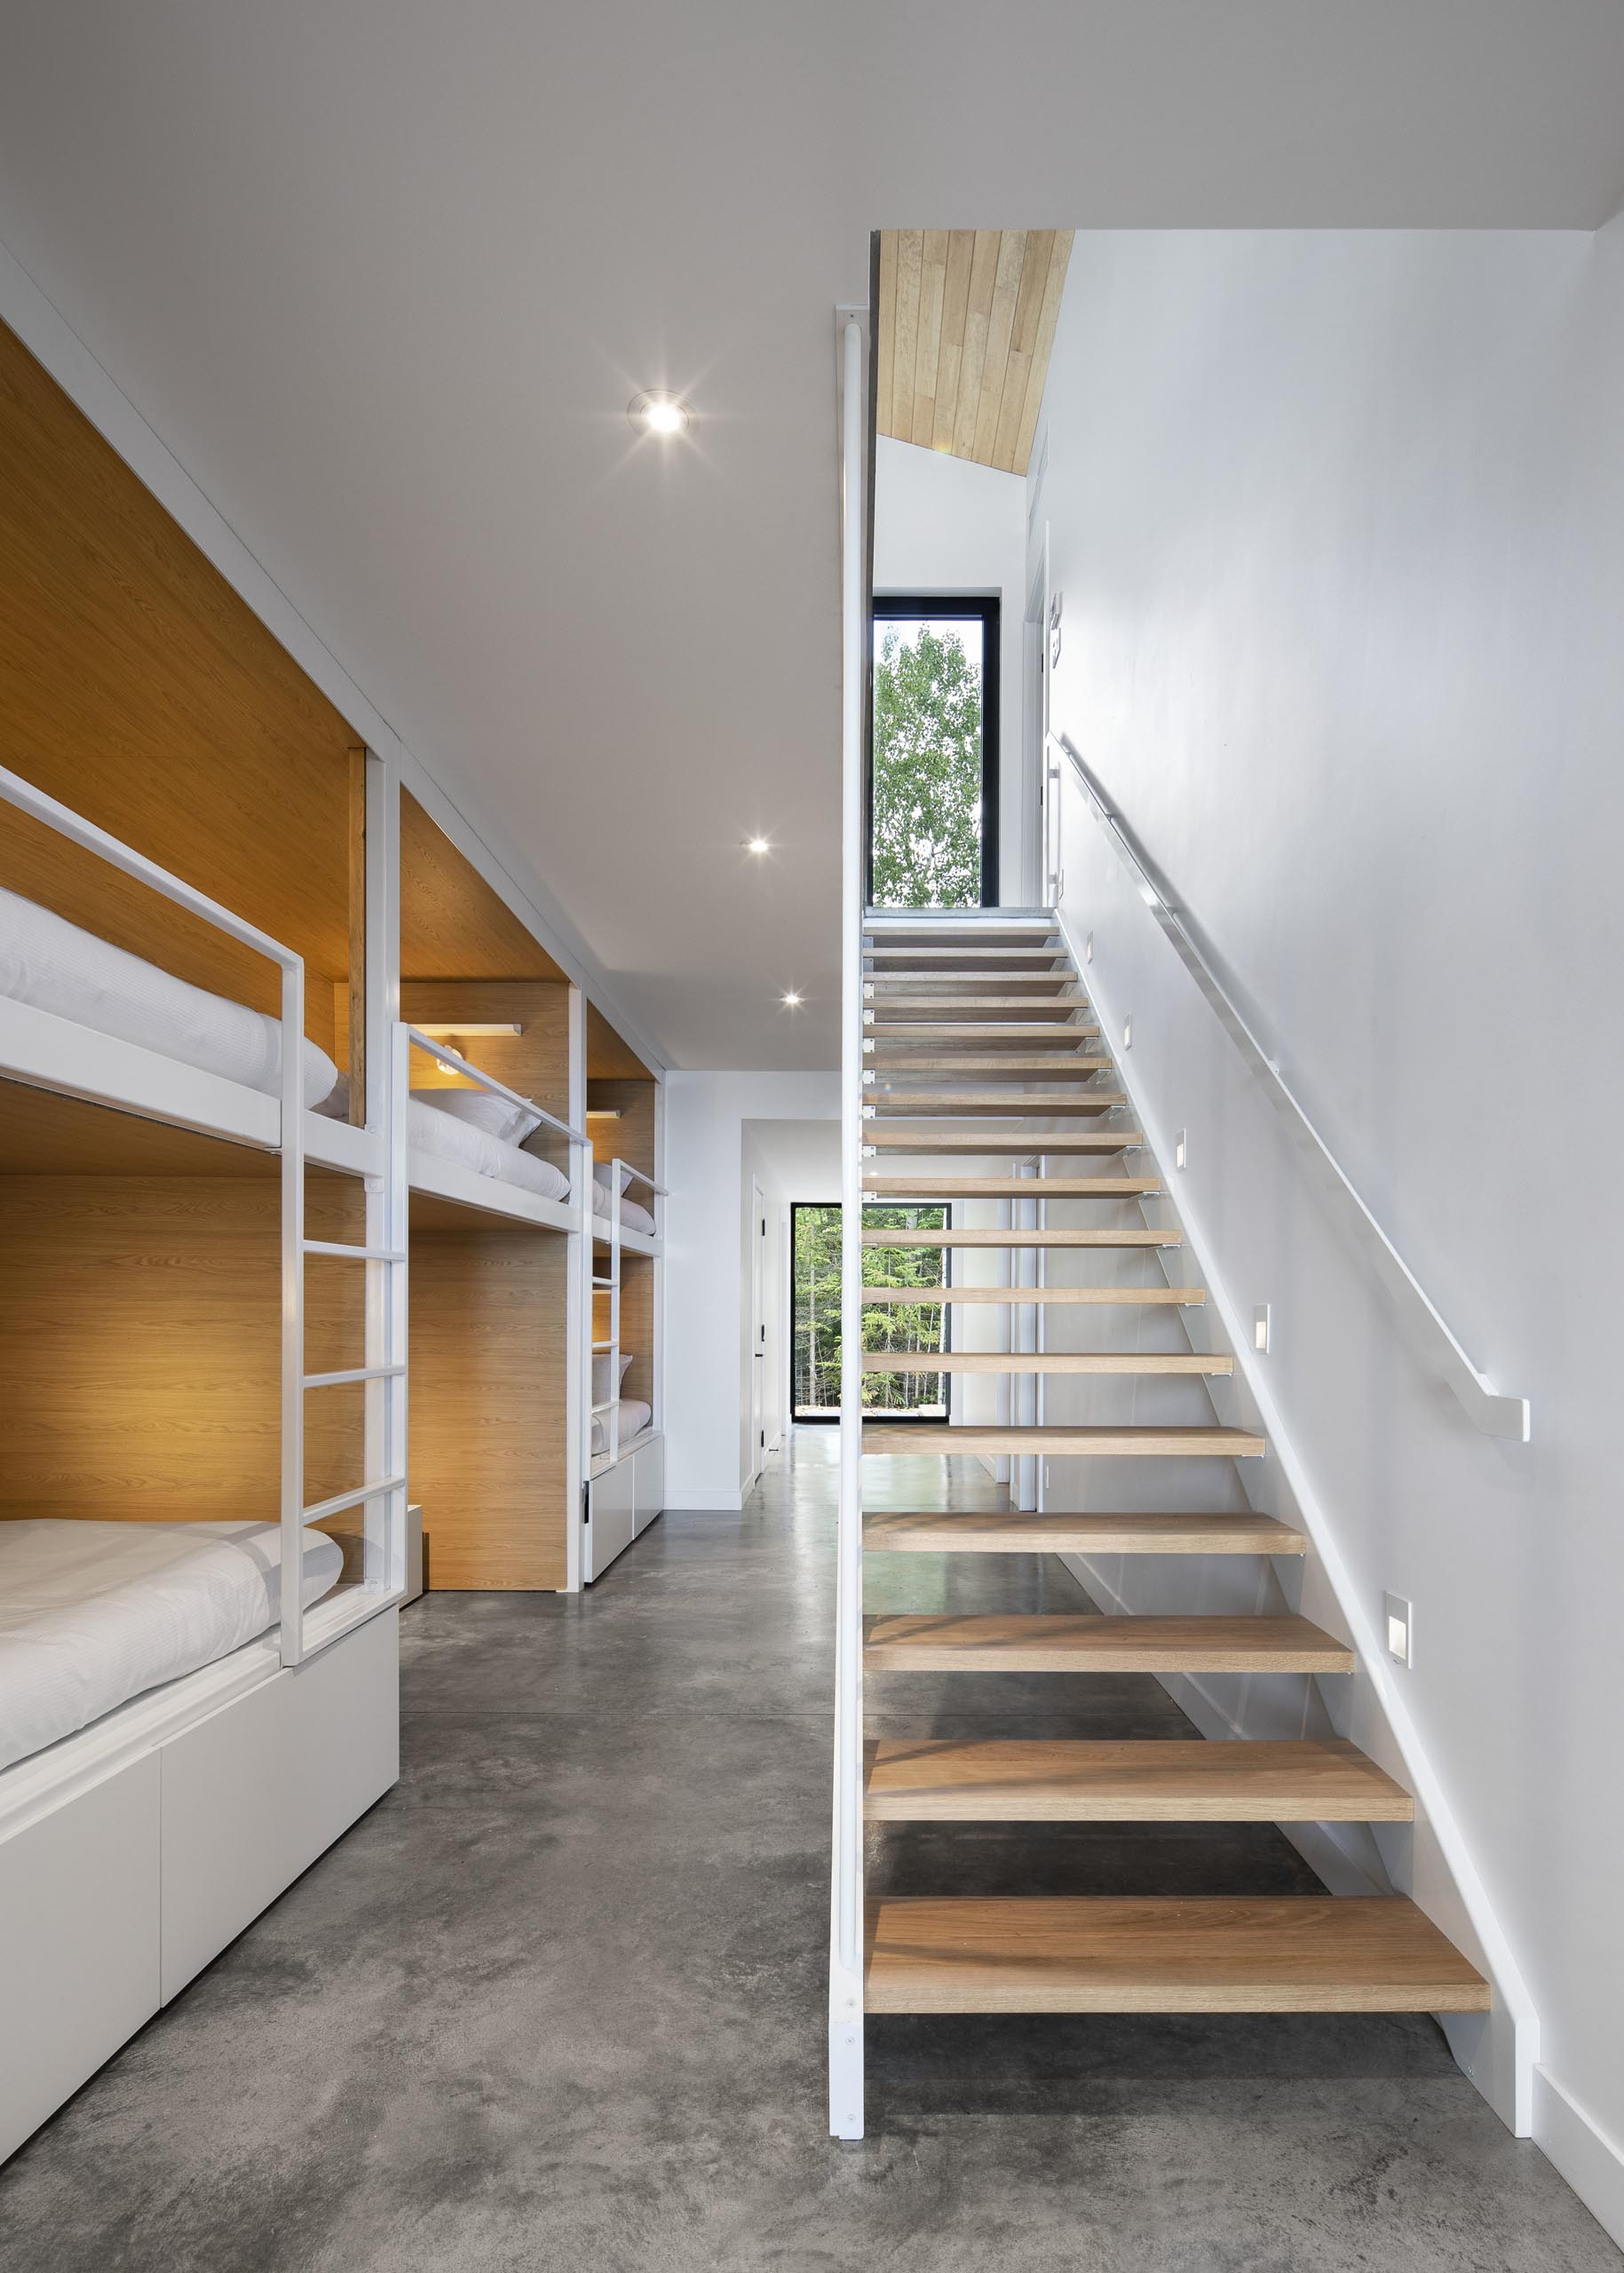 At the bottom of these modern stairs stairs and open to the hallway, are multiple sets of bunk beds. These bunk beds have a wood interior, with white suppers and ladders that match the walls.